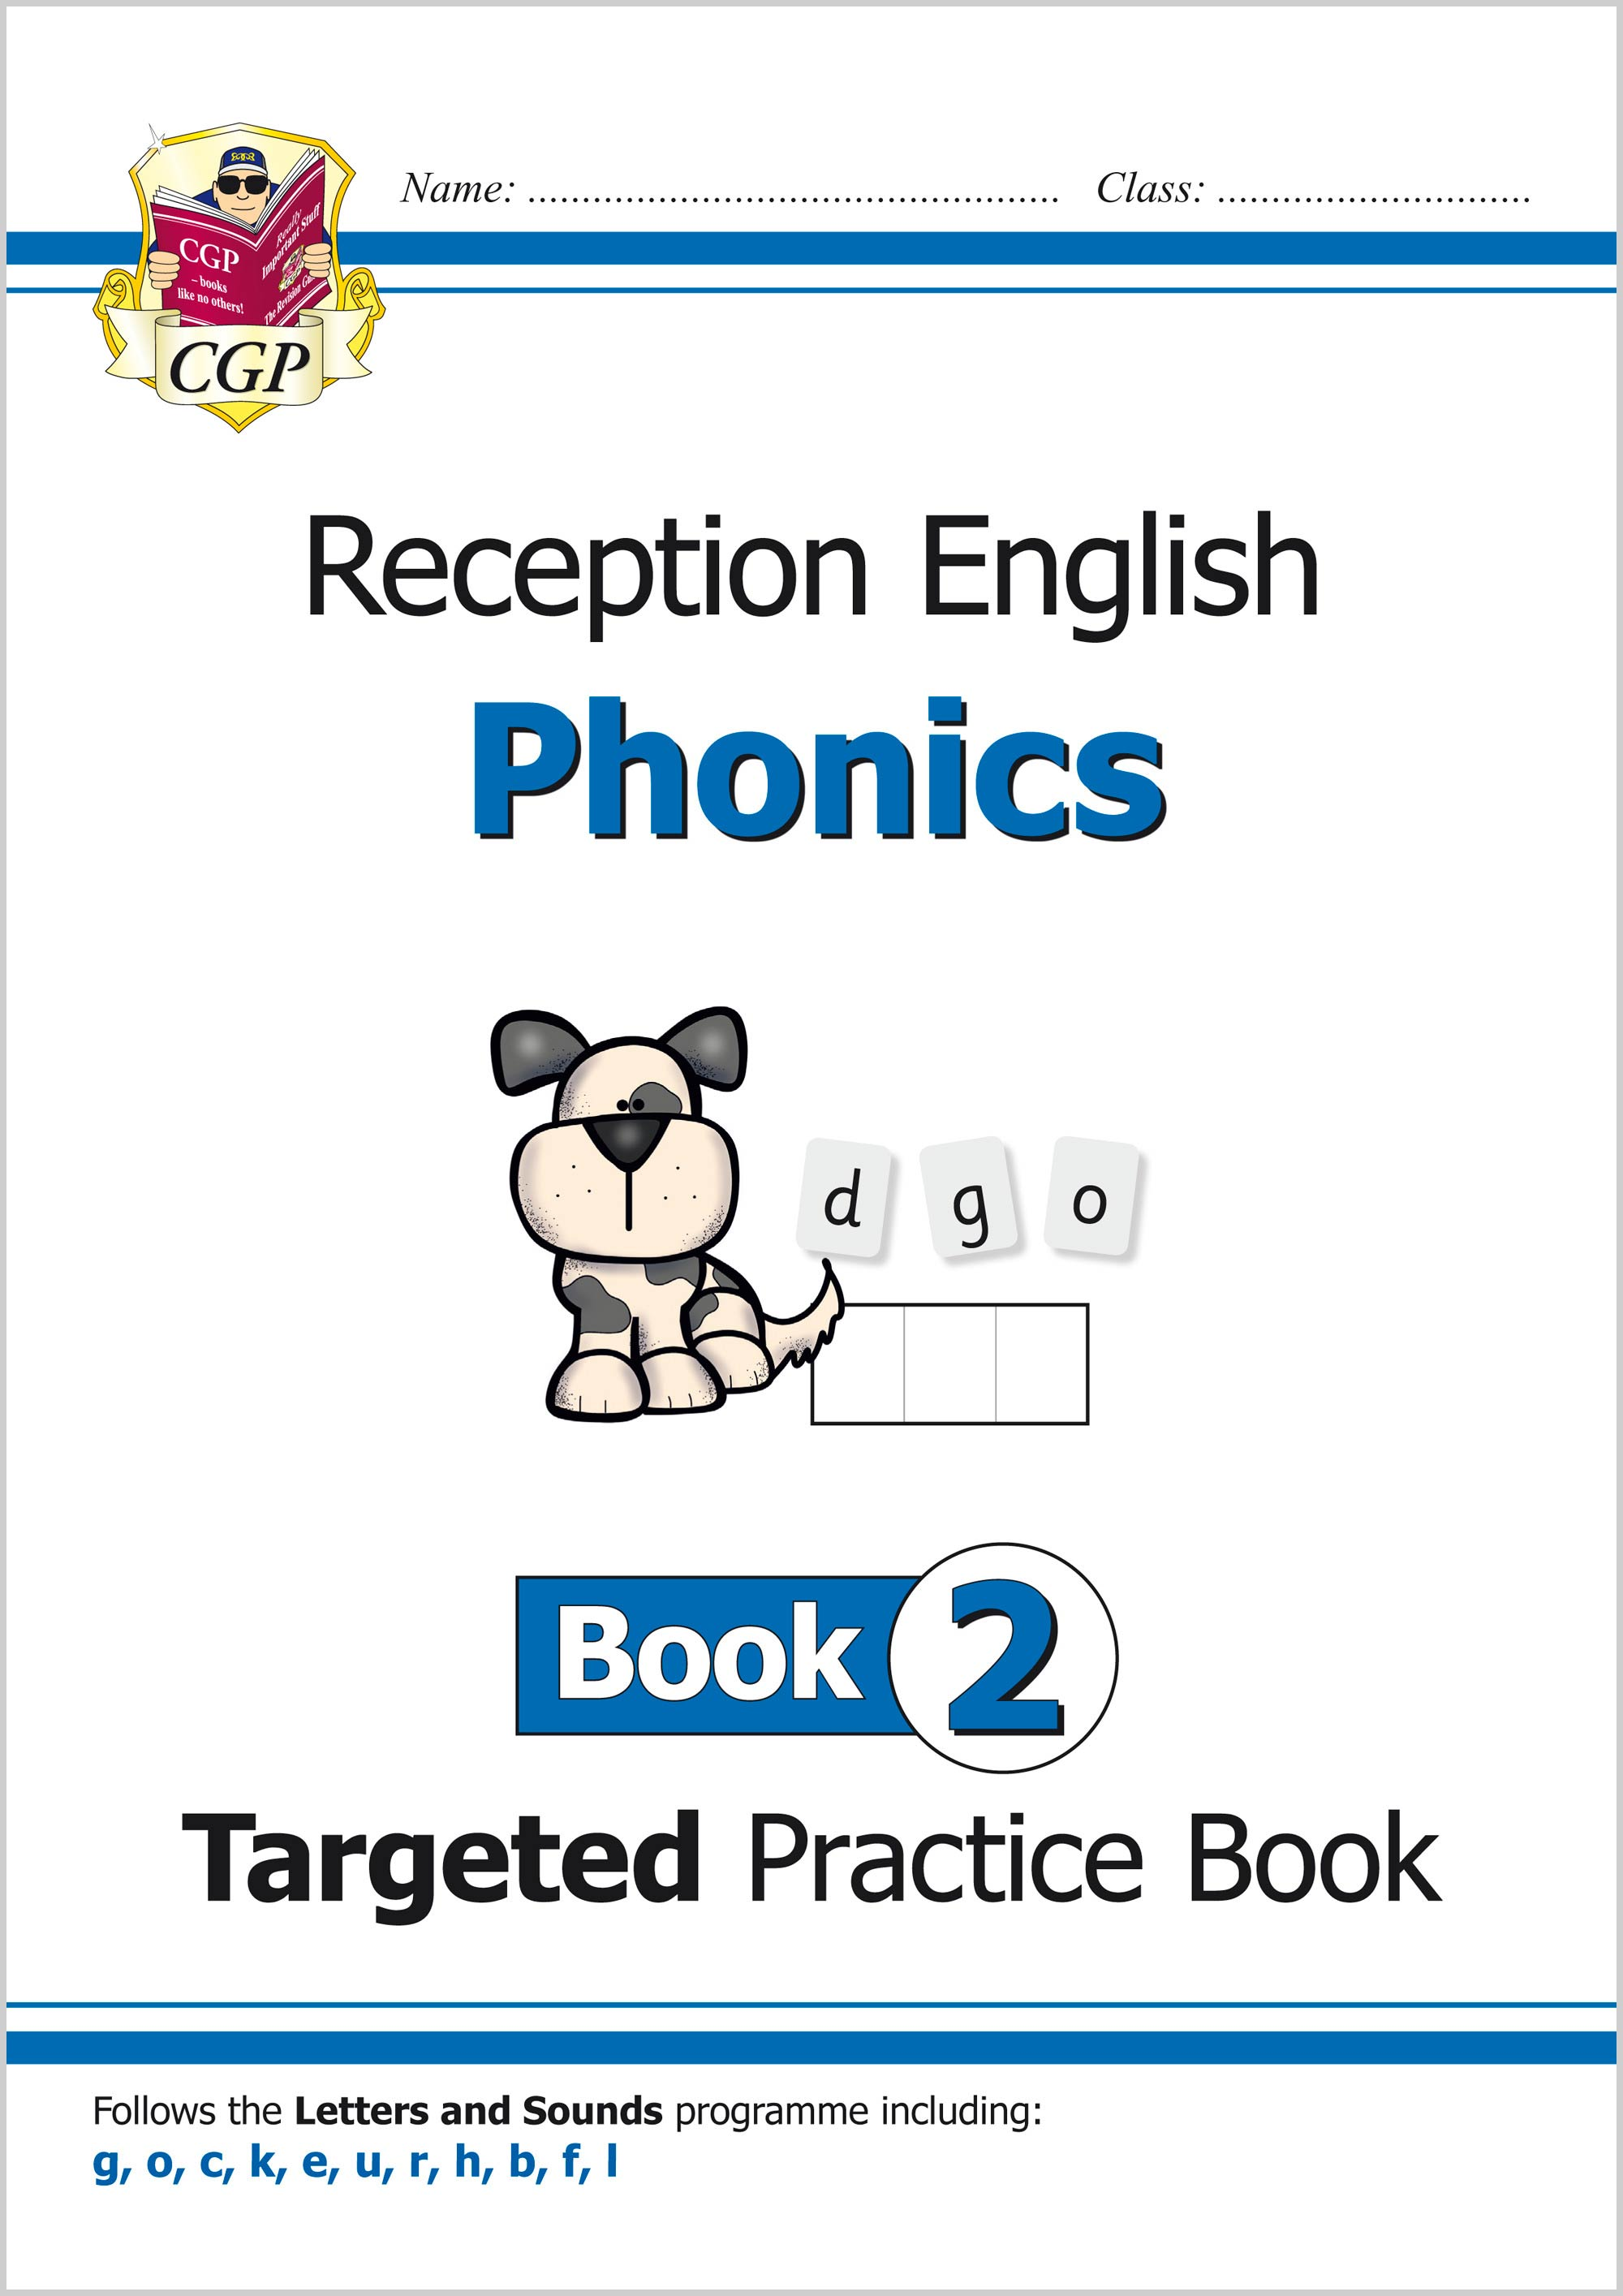 EROW211 - English Targeted Practice Book: Phonics - Reception Book 2